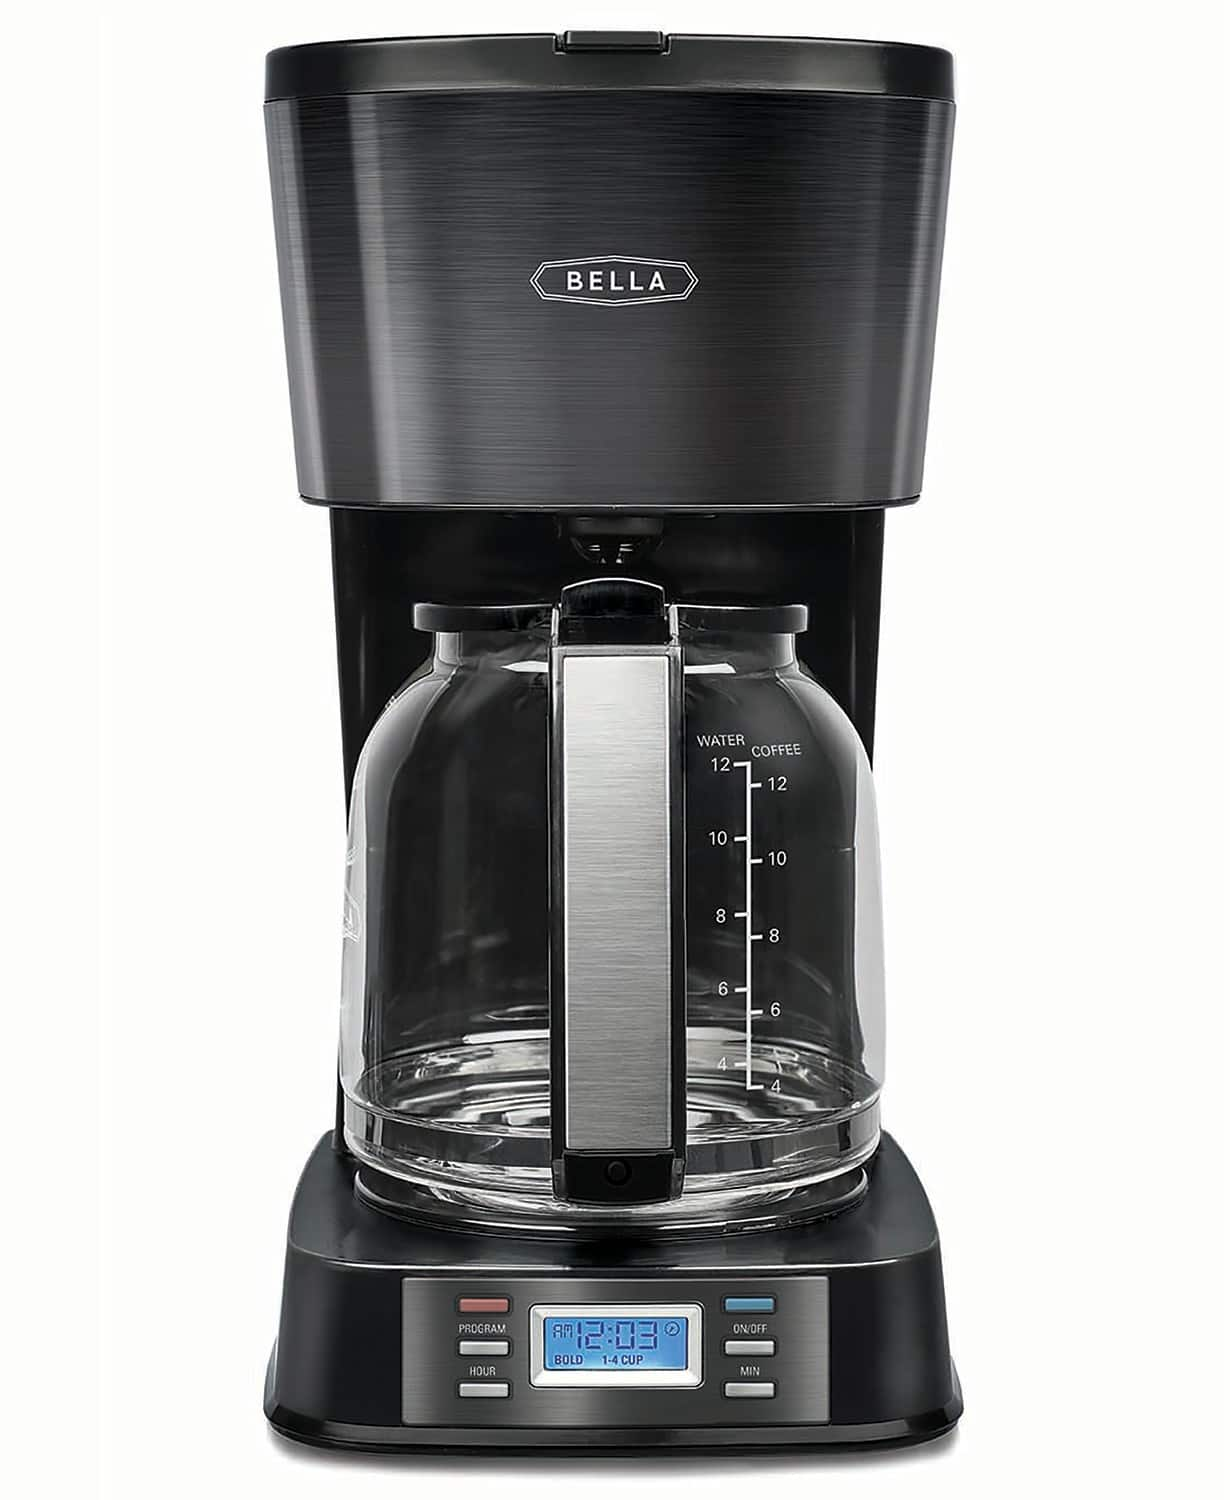 Bella 12-Cup Programmable Coffee Maker $20 + FS @ Macys $19.93